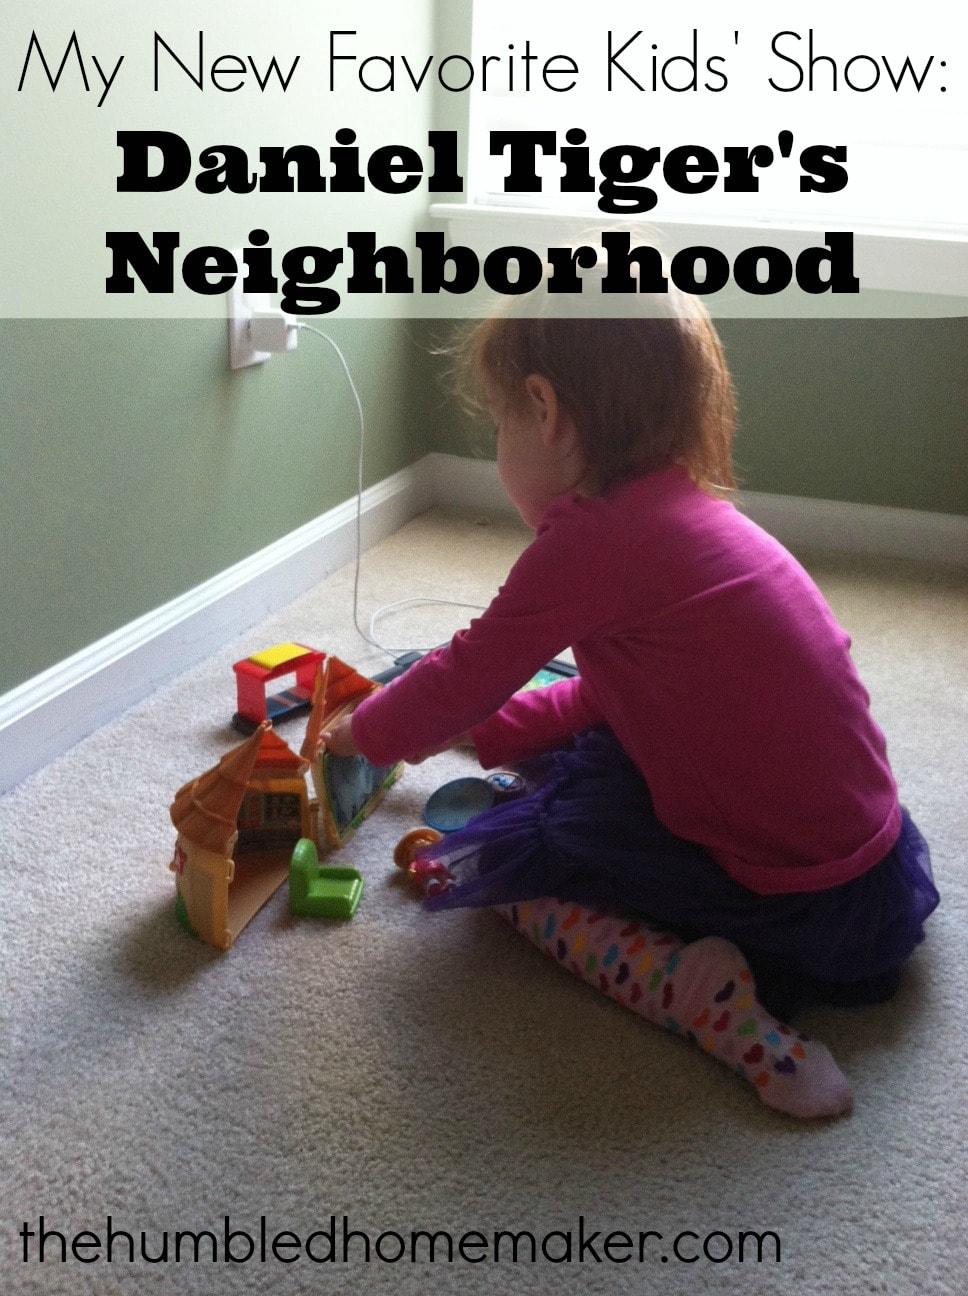 Looking for a GREAT, wholesome TV show for your kids that will take you back to childhood? Check out Daniel Tiger's Neighborhood!